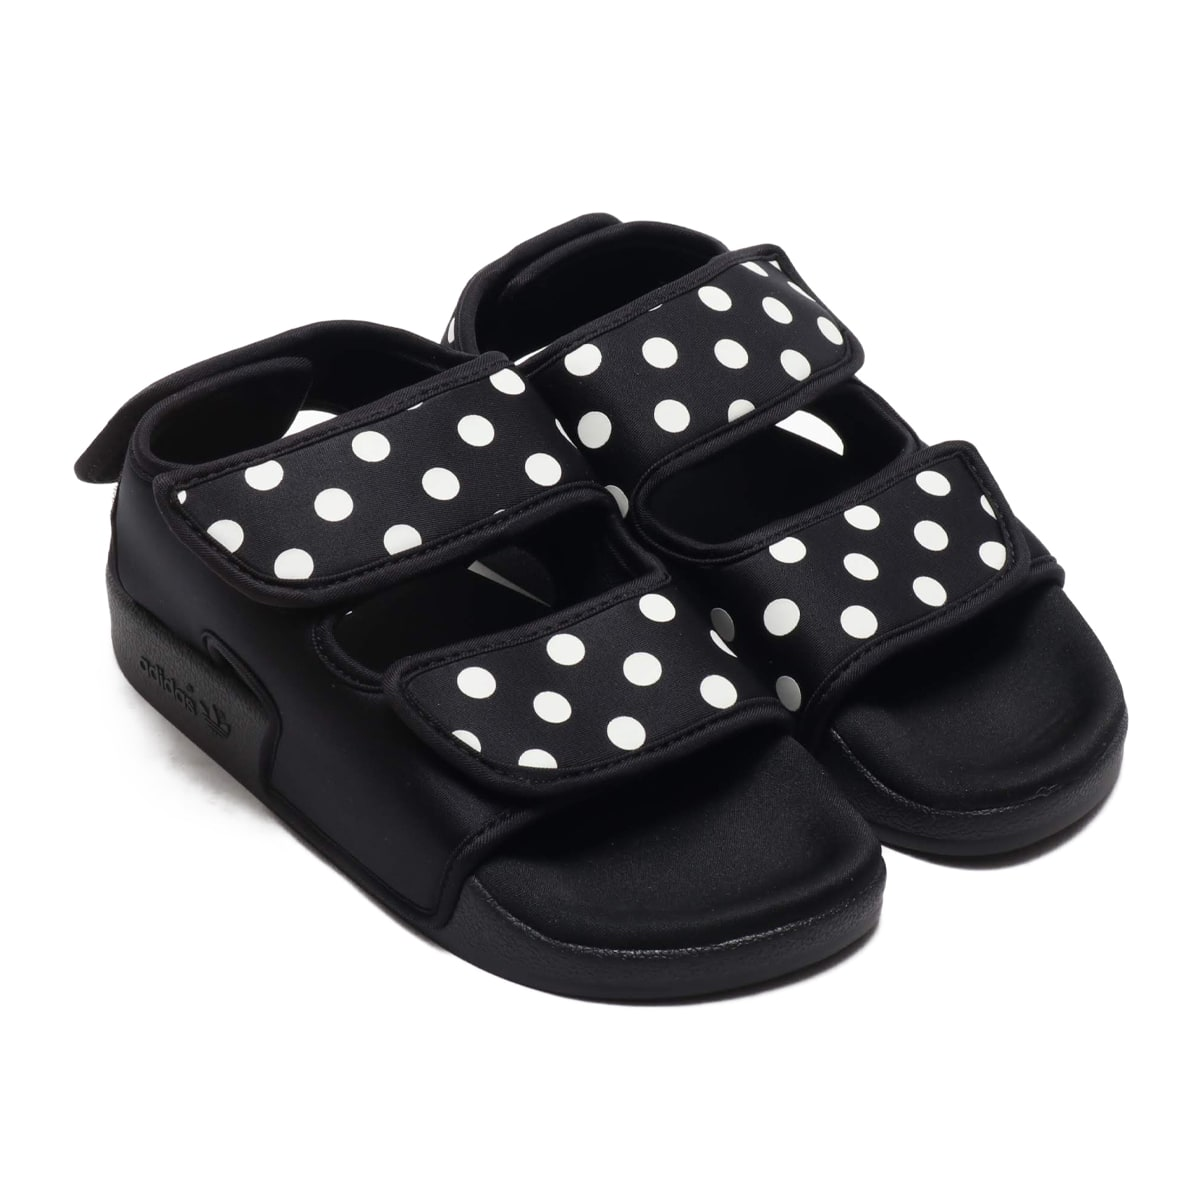 adidas ADILETTE SANDAL 3.0 W CORE BLACK/OFF WHITE/CORE BLACK 20SS-I_photo_large